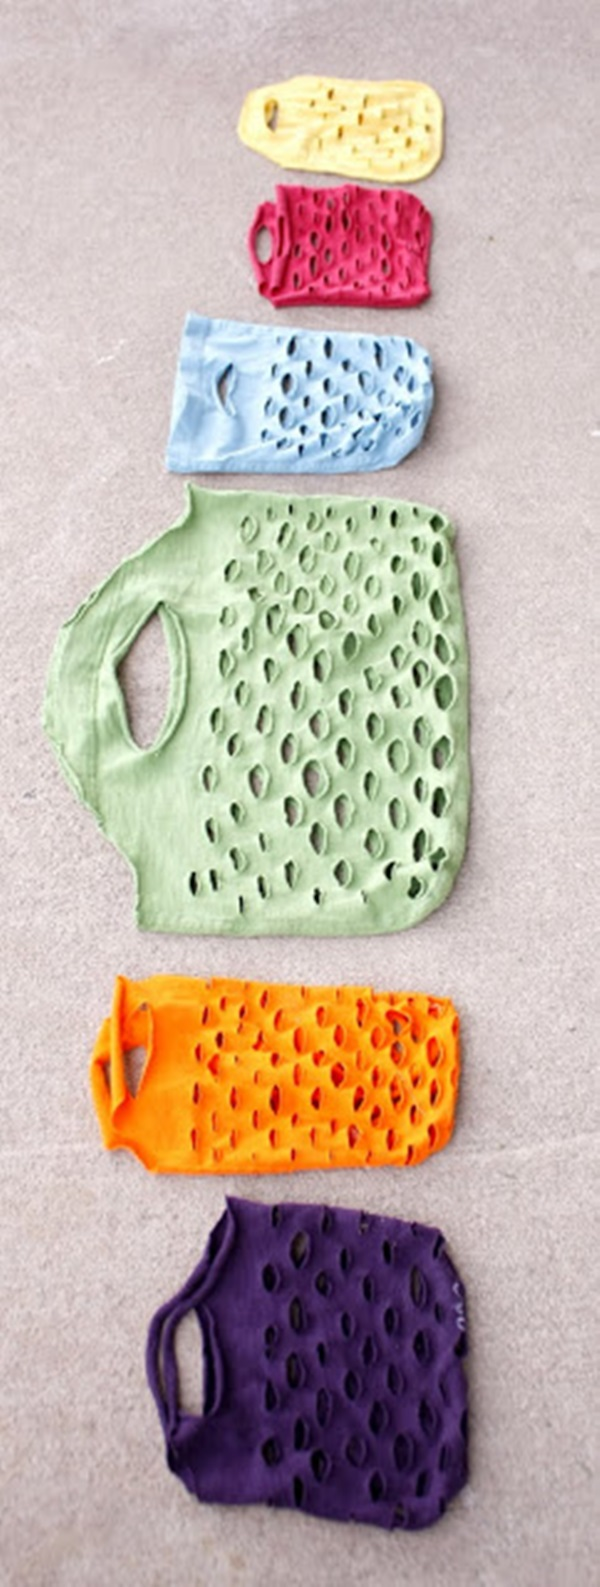 40 Stunning Ways To Recycle Old Clothes Into New Fashions